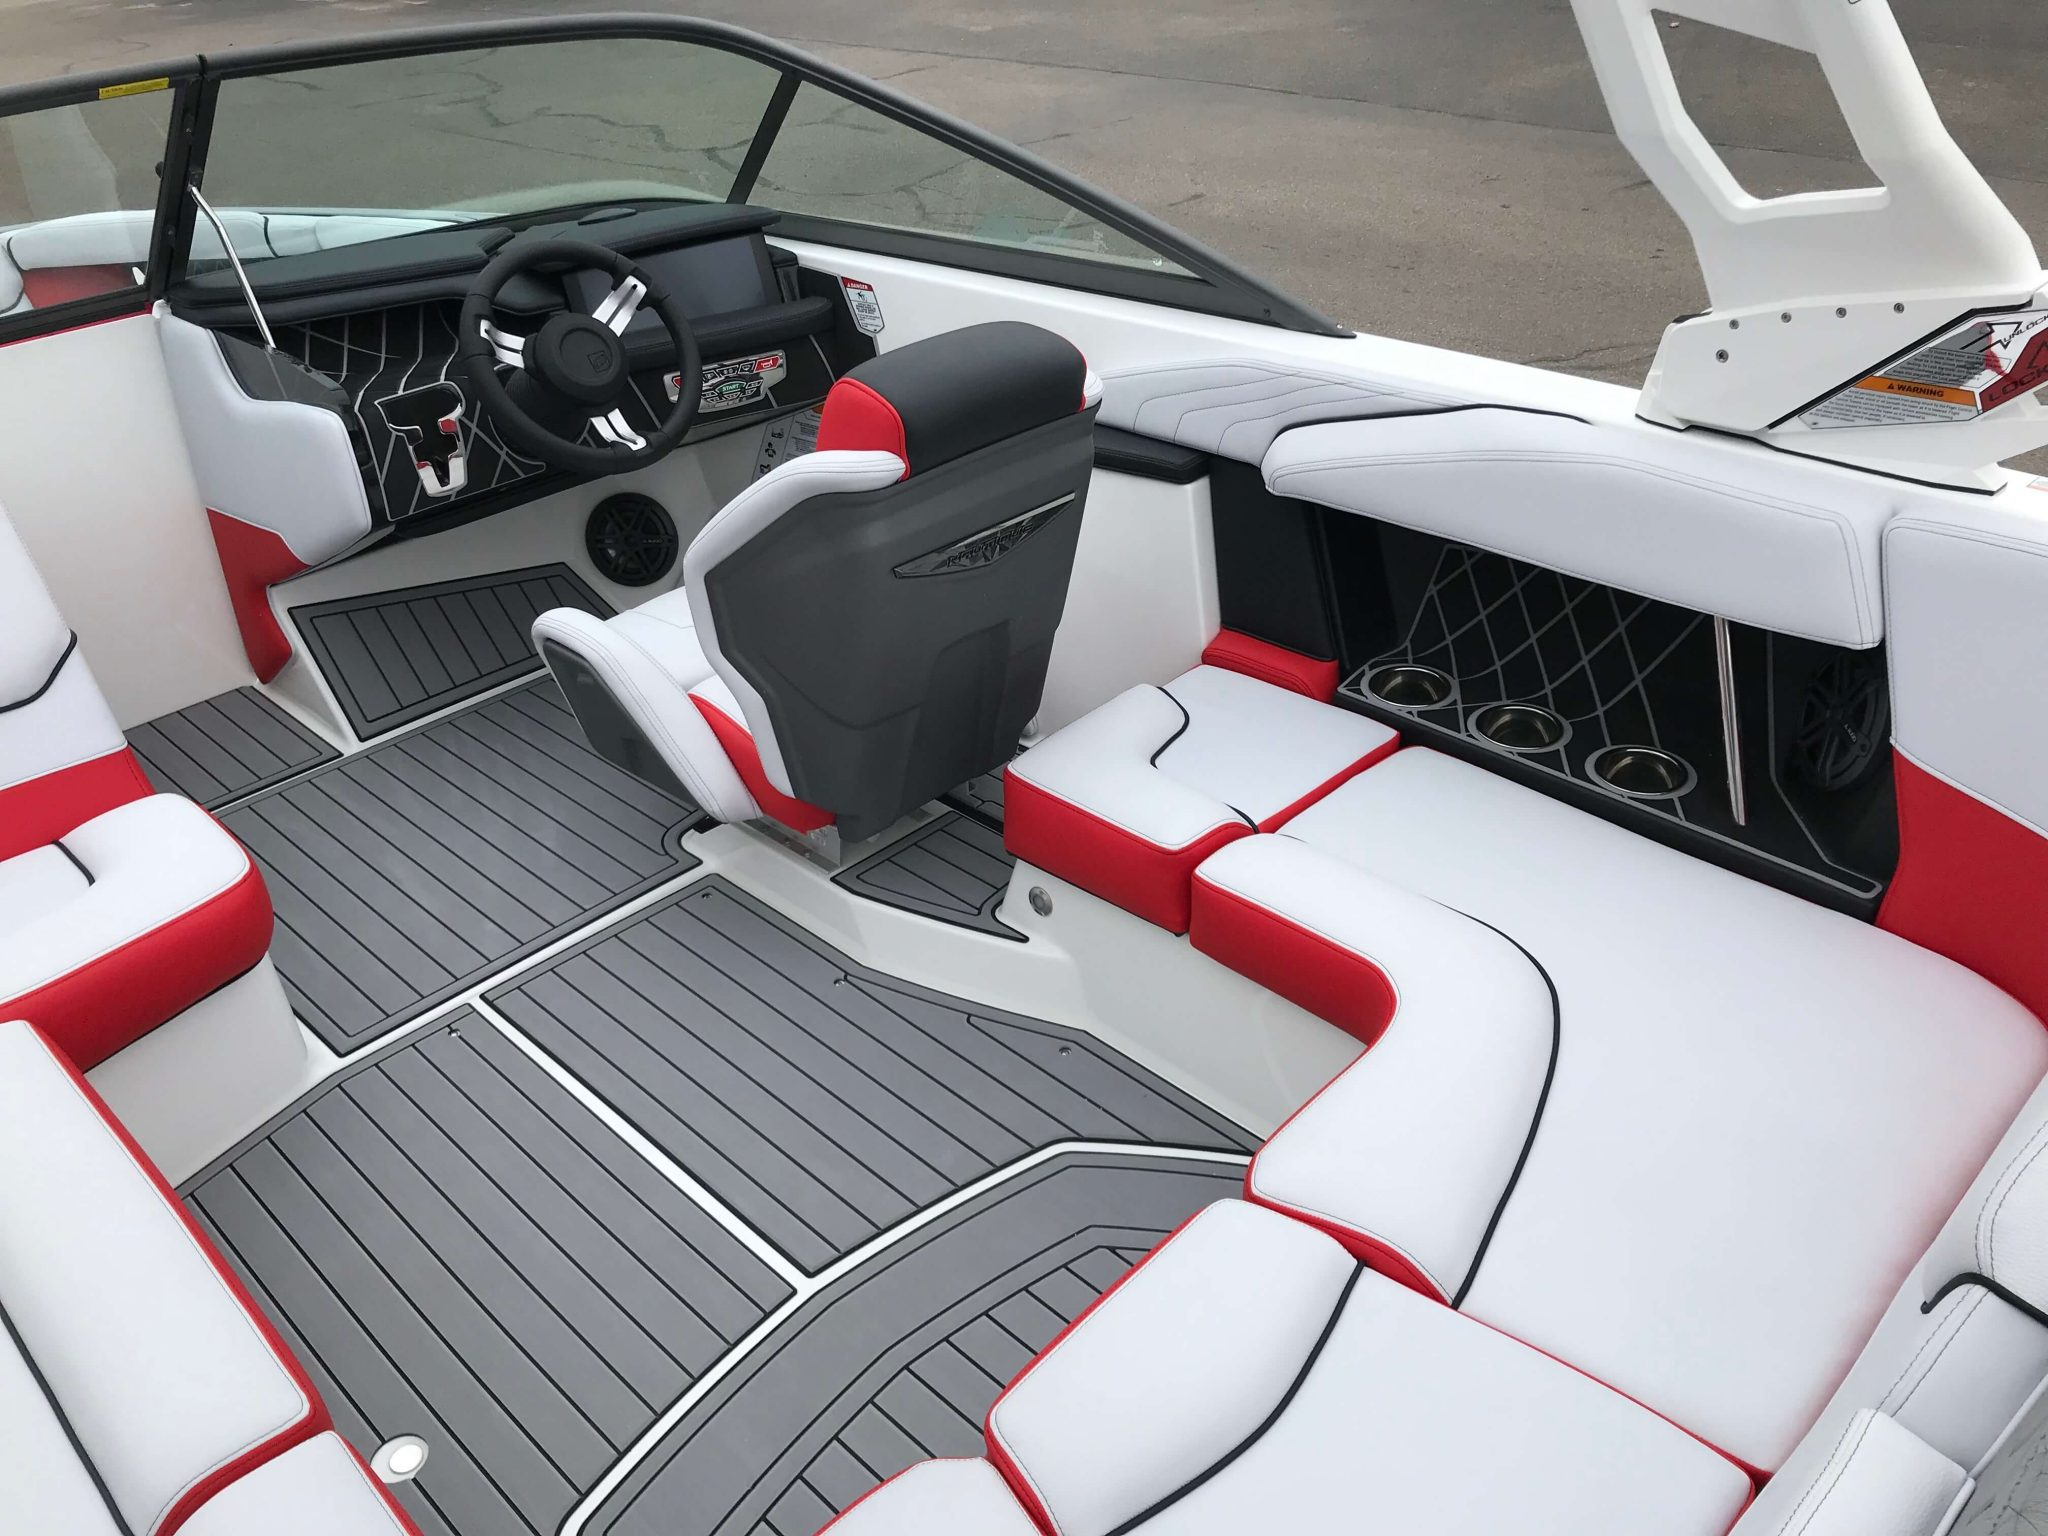 2019 Nautique GS20 Interior Layout 6